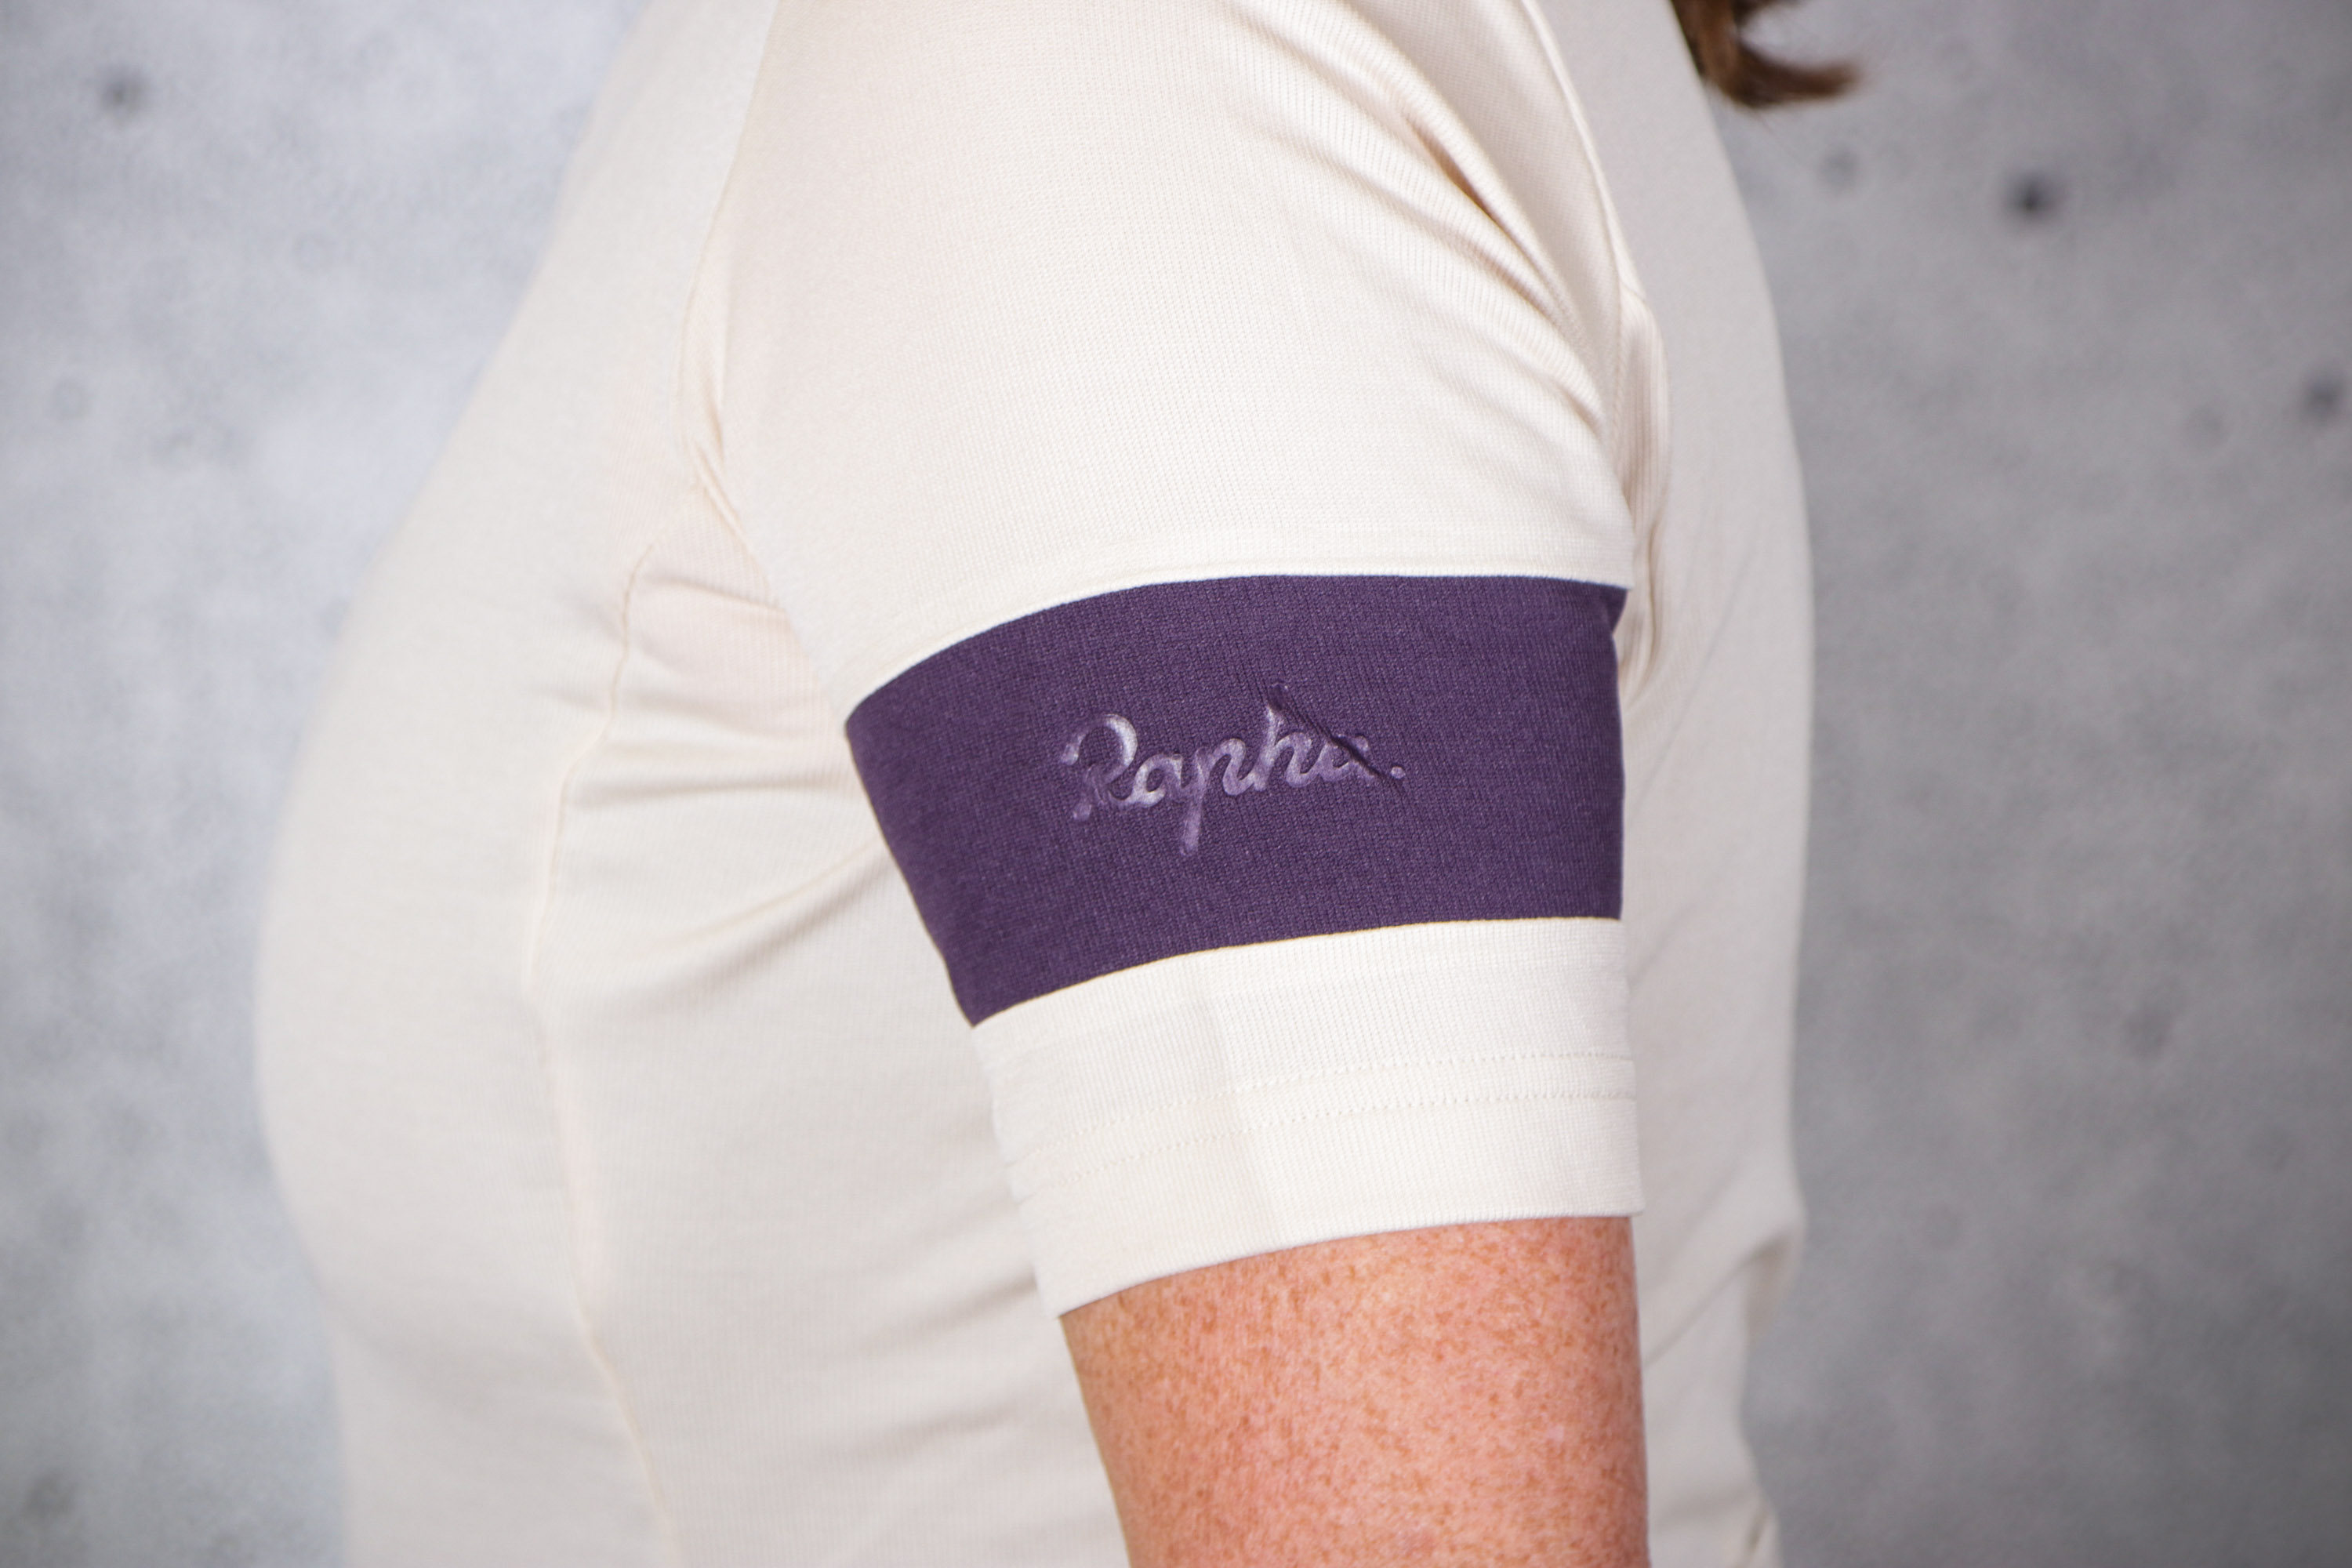 RAPHA Ladies Classic Jersey II PIC Paprika Wool Blend Cycling Top Size S BNWT